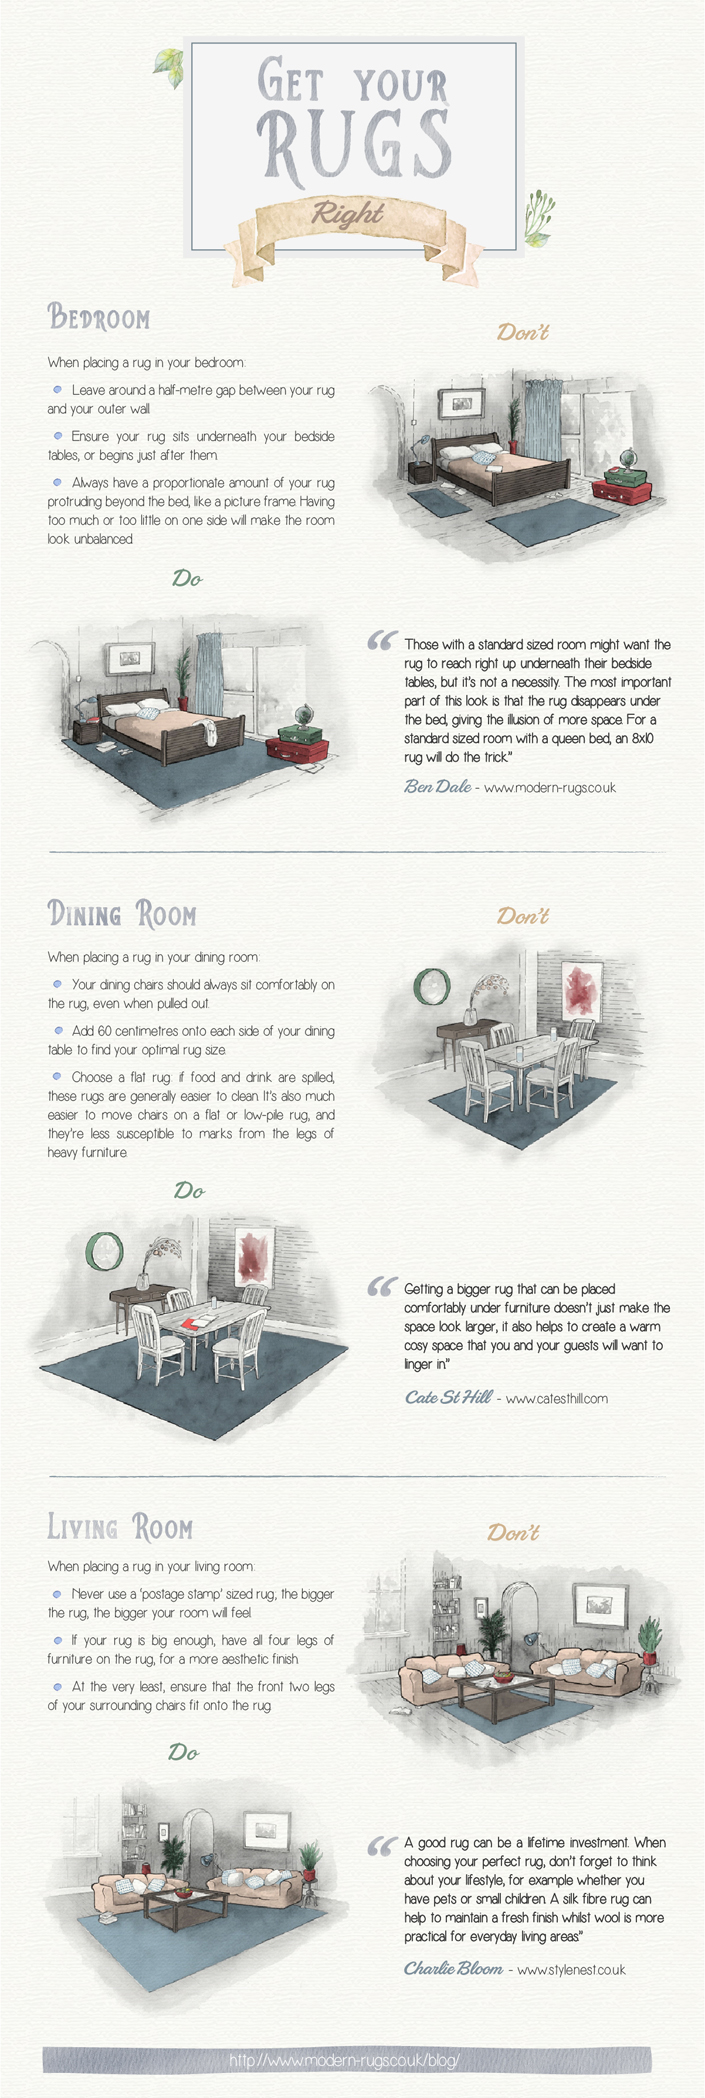 Perfect Rug Infographic rev